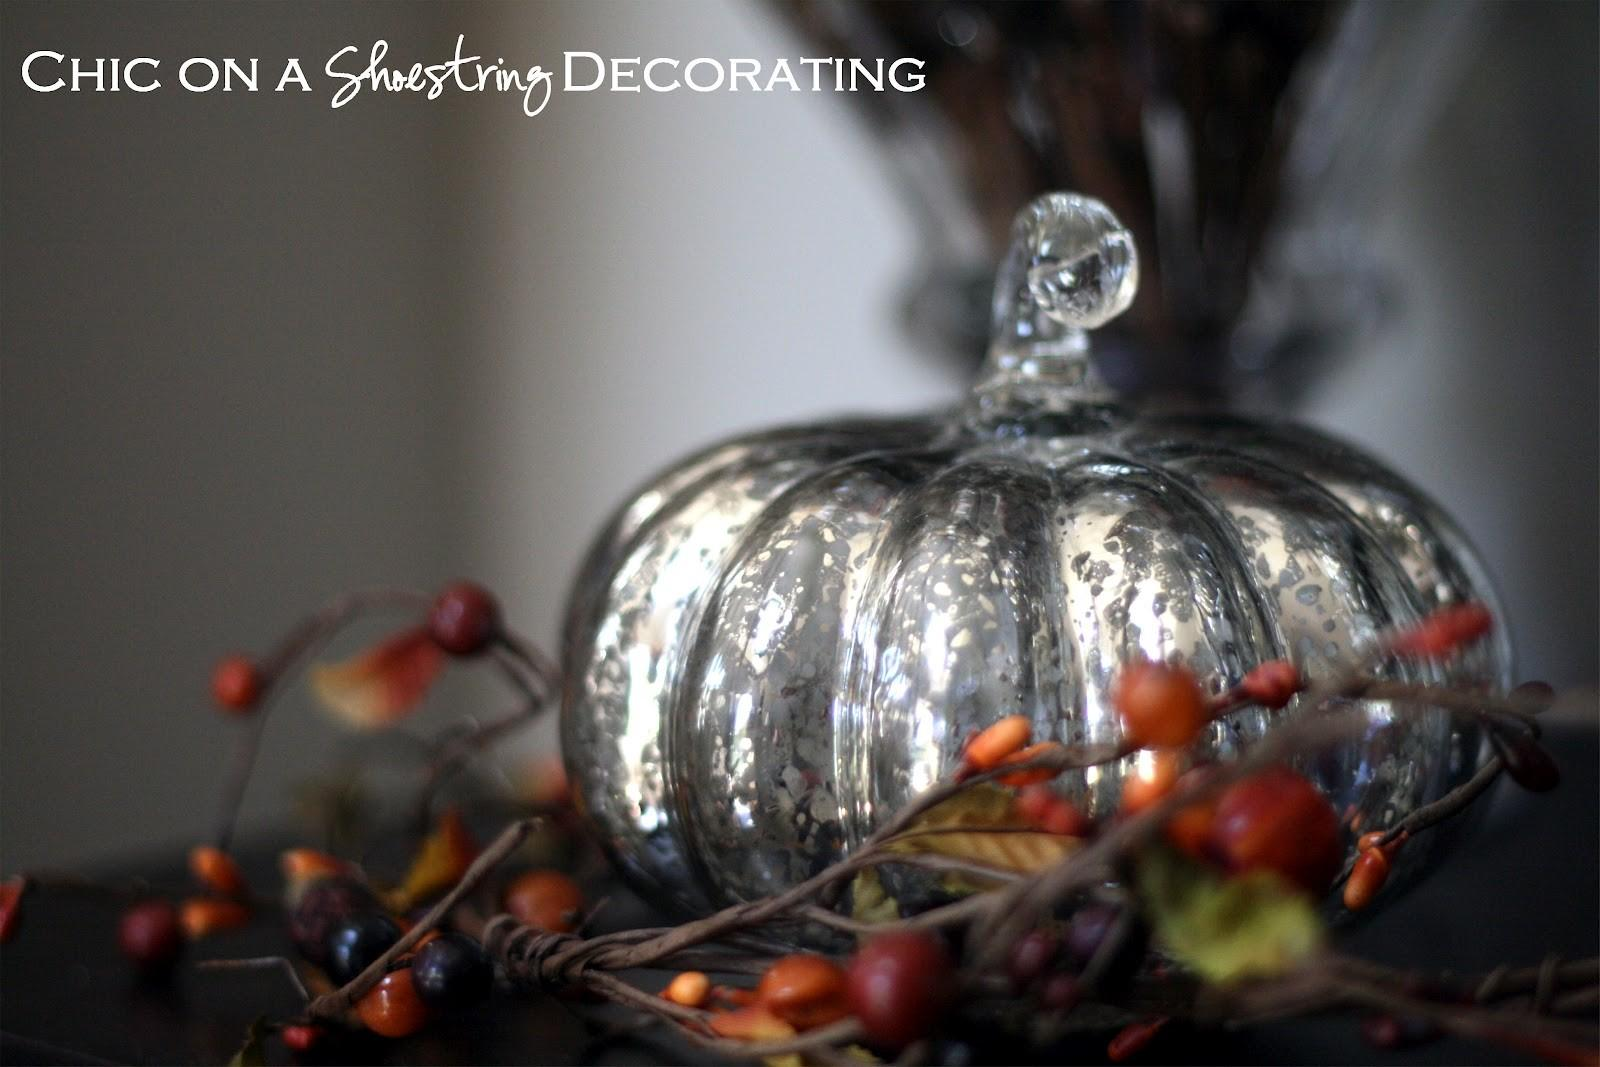 Chic Shoestring Decorating Pumpkinlicious Mercury Glass